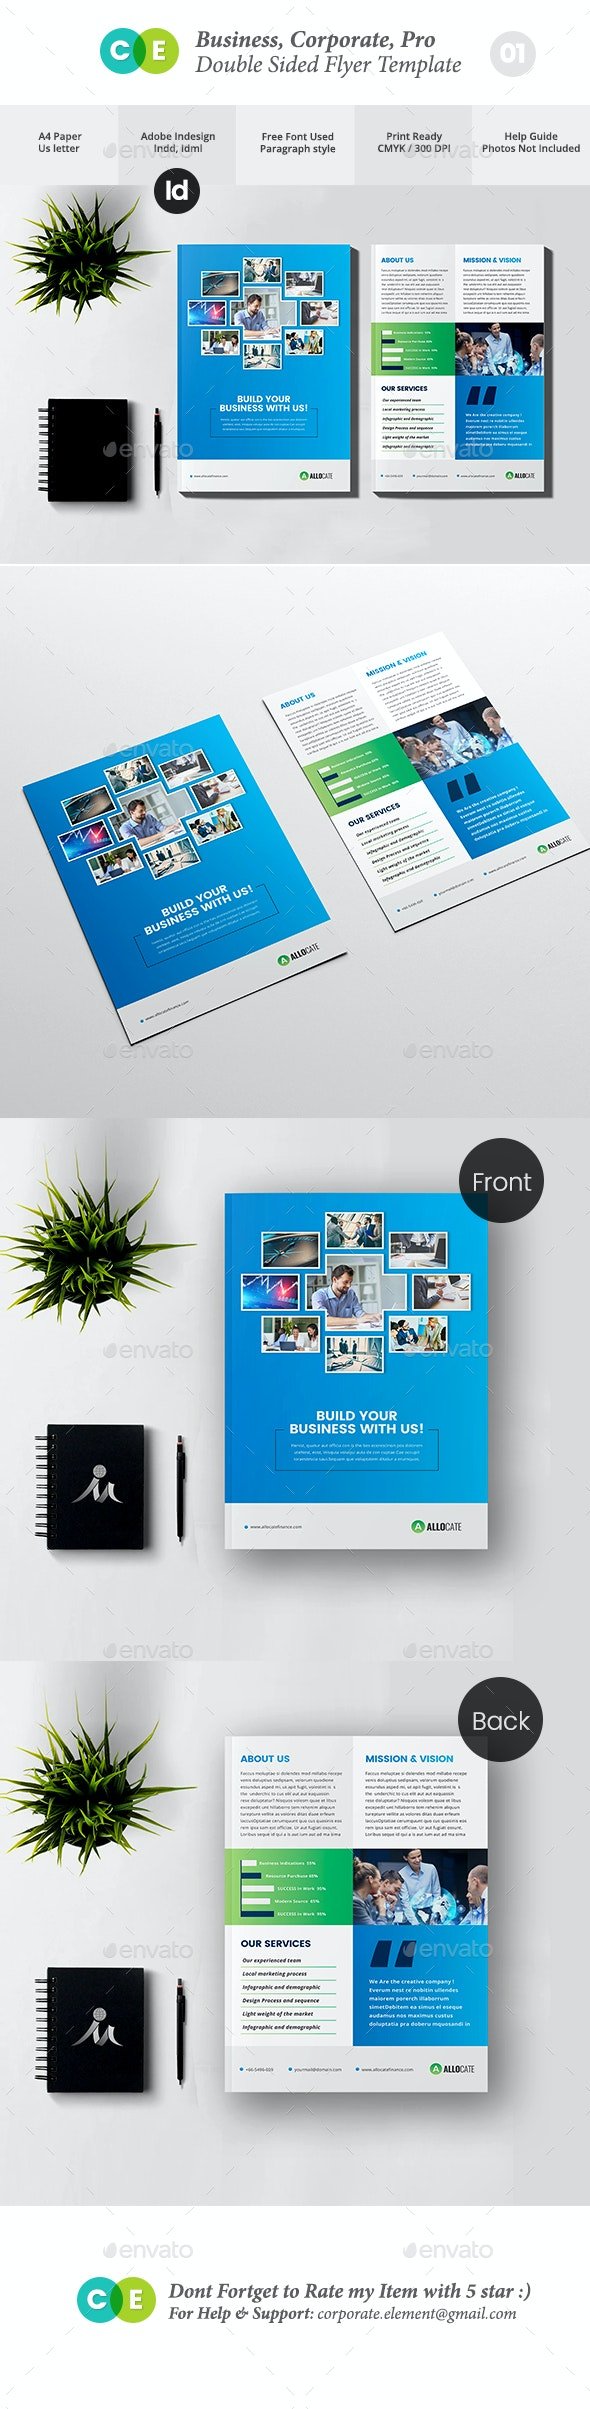 Clean Corporate Pro Double Sided Flyer V01 - Flyers Print Templates